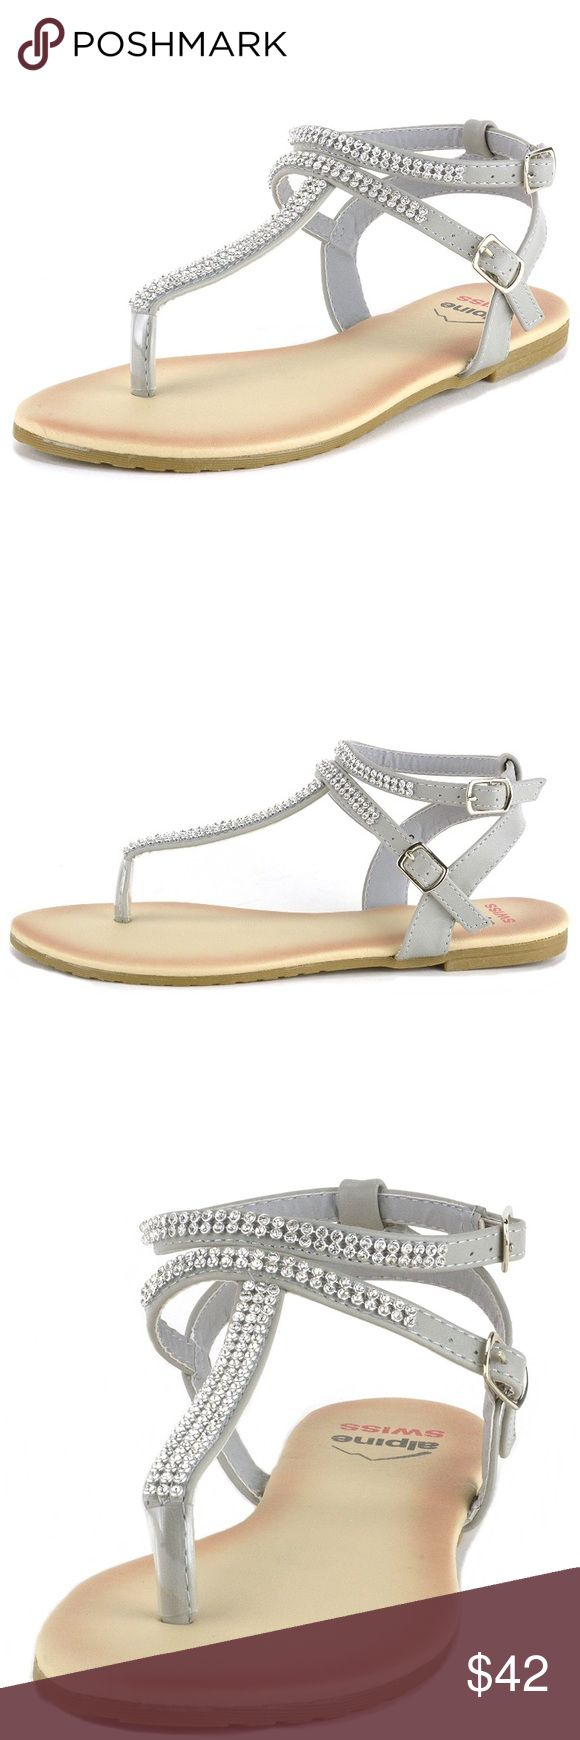 "Slingback T-Strap Rhinestone Ankle Strap Sandals Slingback T-Strap Rhinestone Ankle Strap Sandals. Features a  Rubber Sole with Man-made Upper Slingback T-Strap Sandals with Rhinestone Accents Light Padding for Comfort 1/2"" Flat Sandals Medium Width Rubber Sole Shoes"